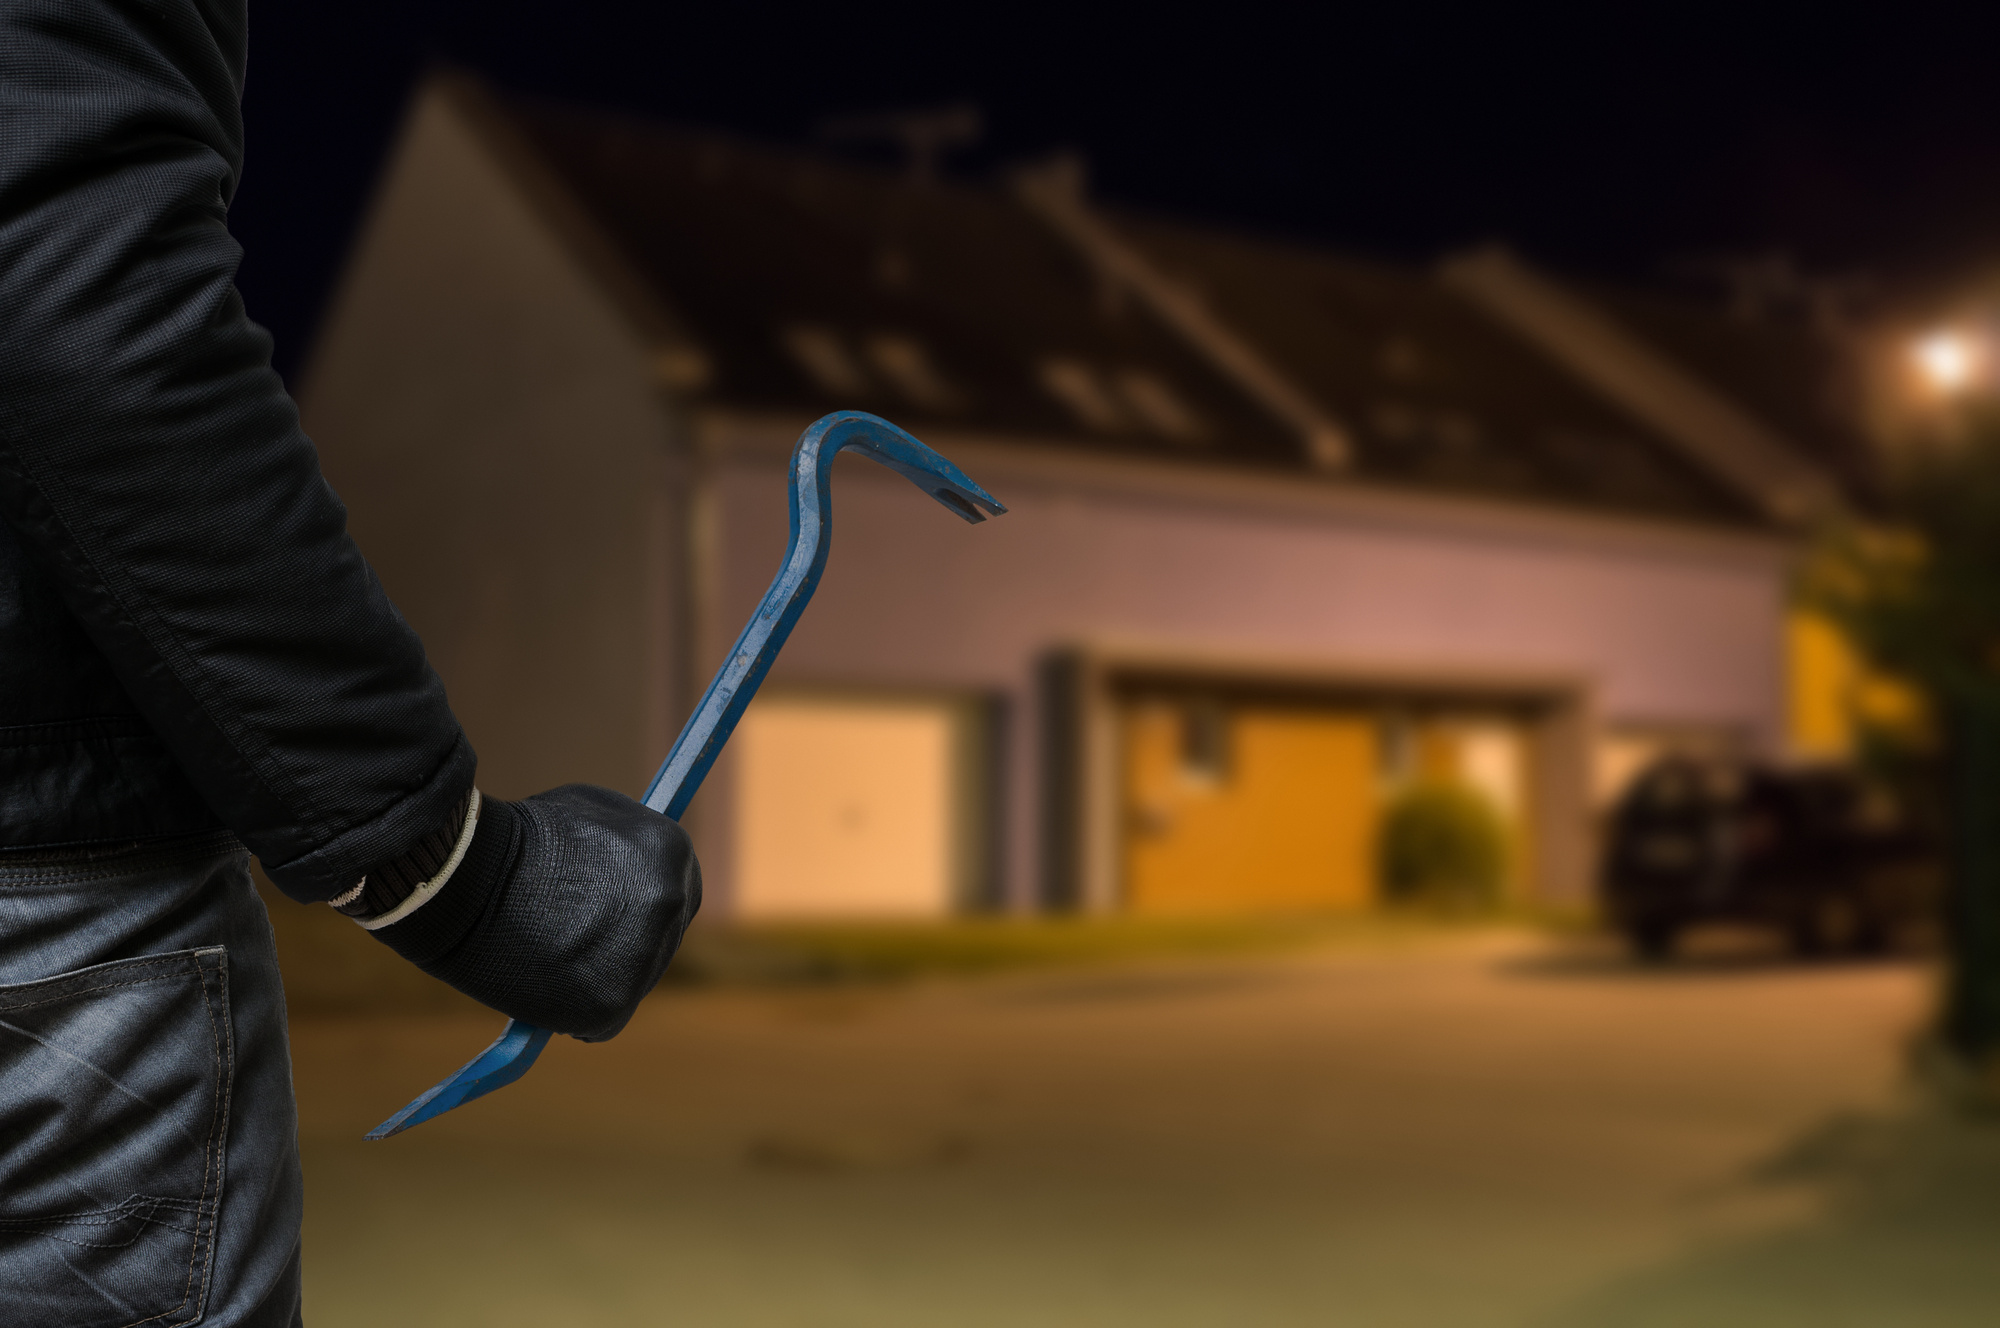 Top 10 Tips to Deter Burglars from Your Home